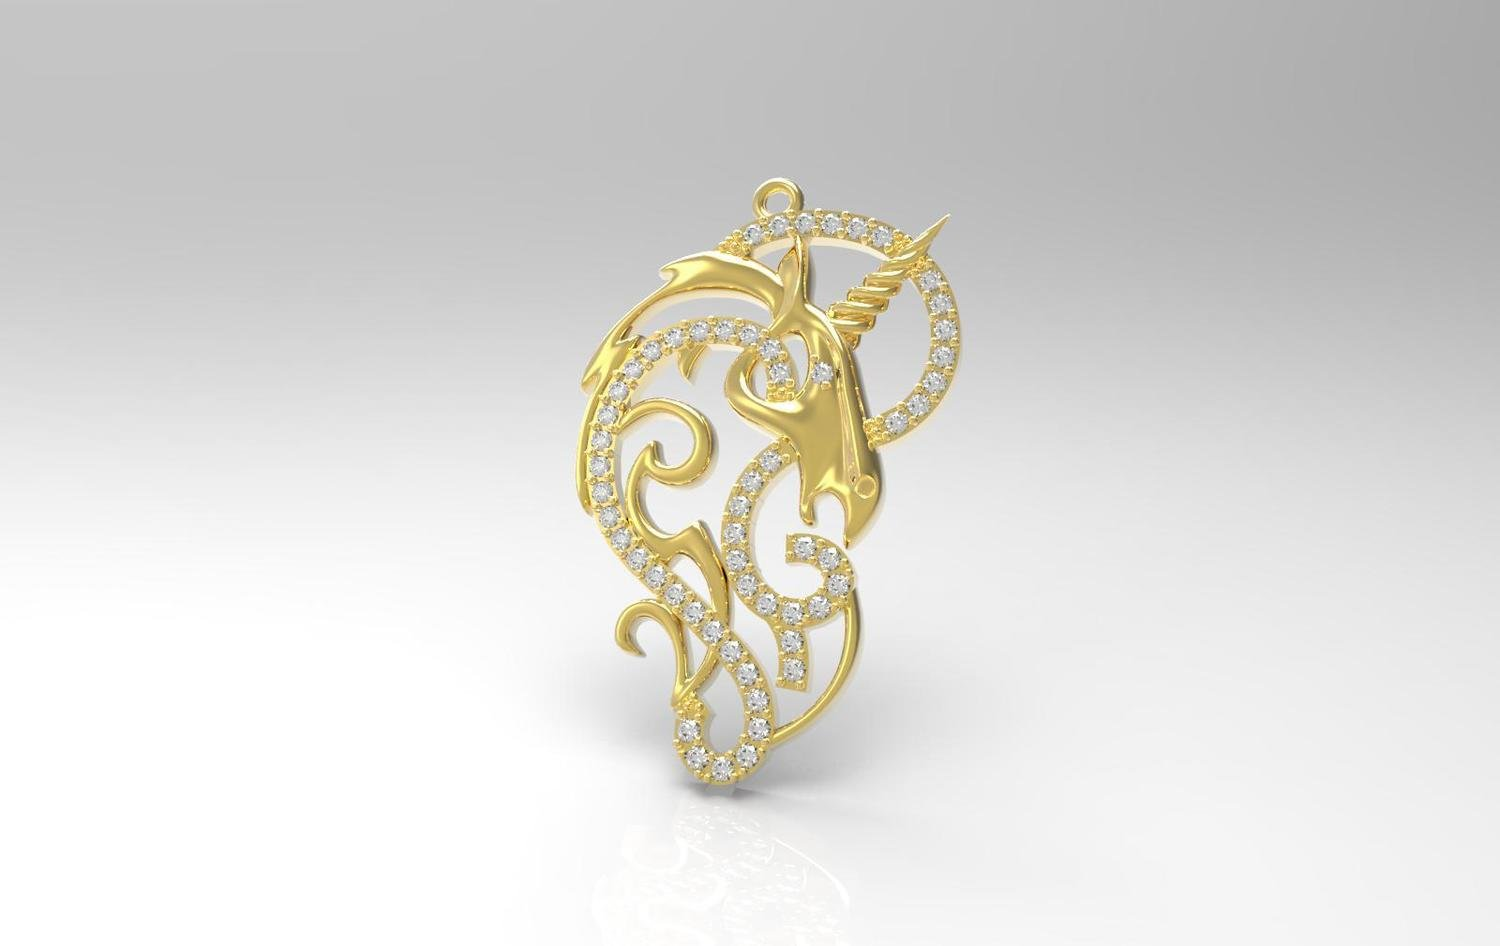 3D CAD Model of Pendant with Diamonds